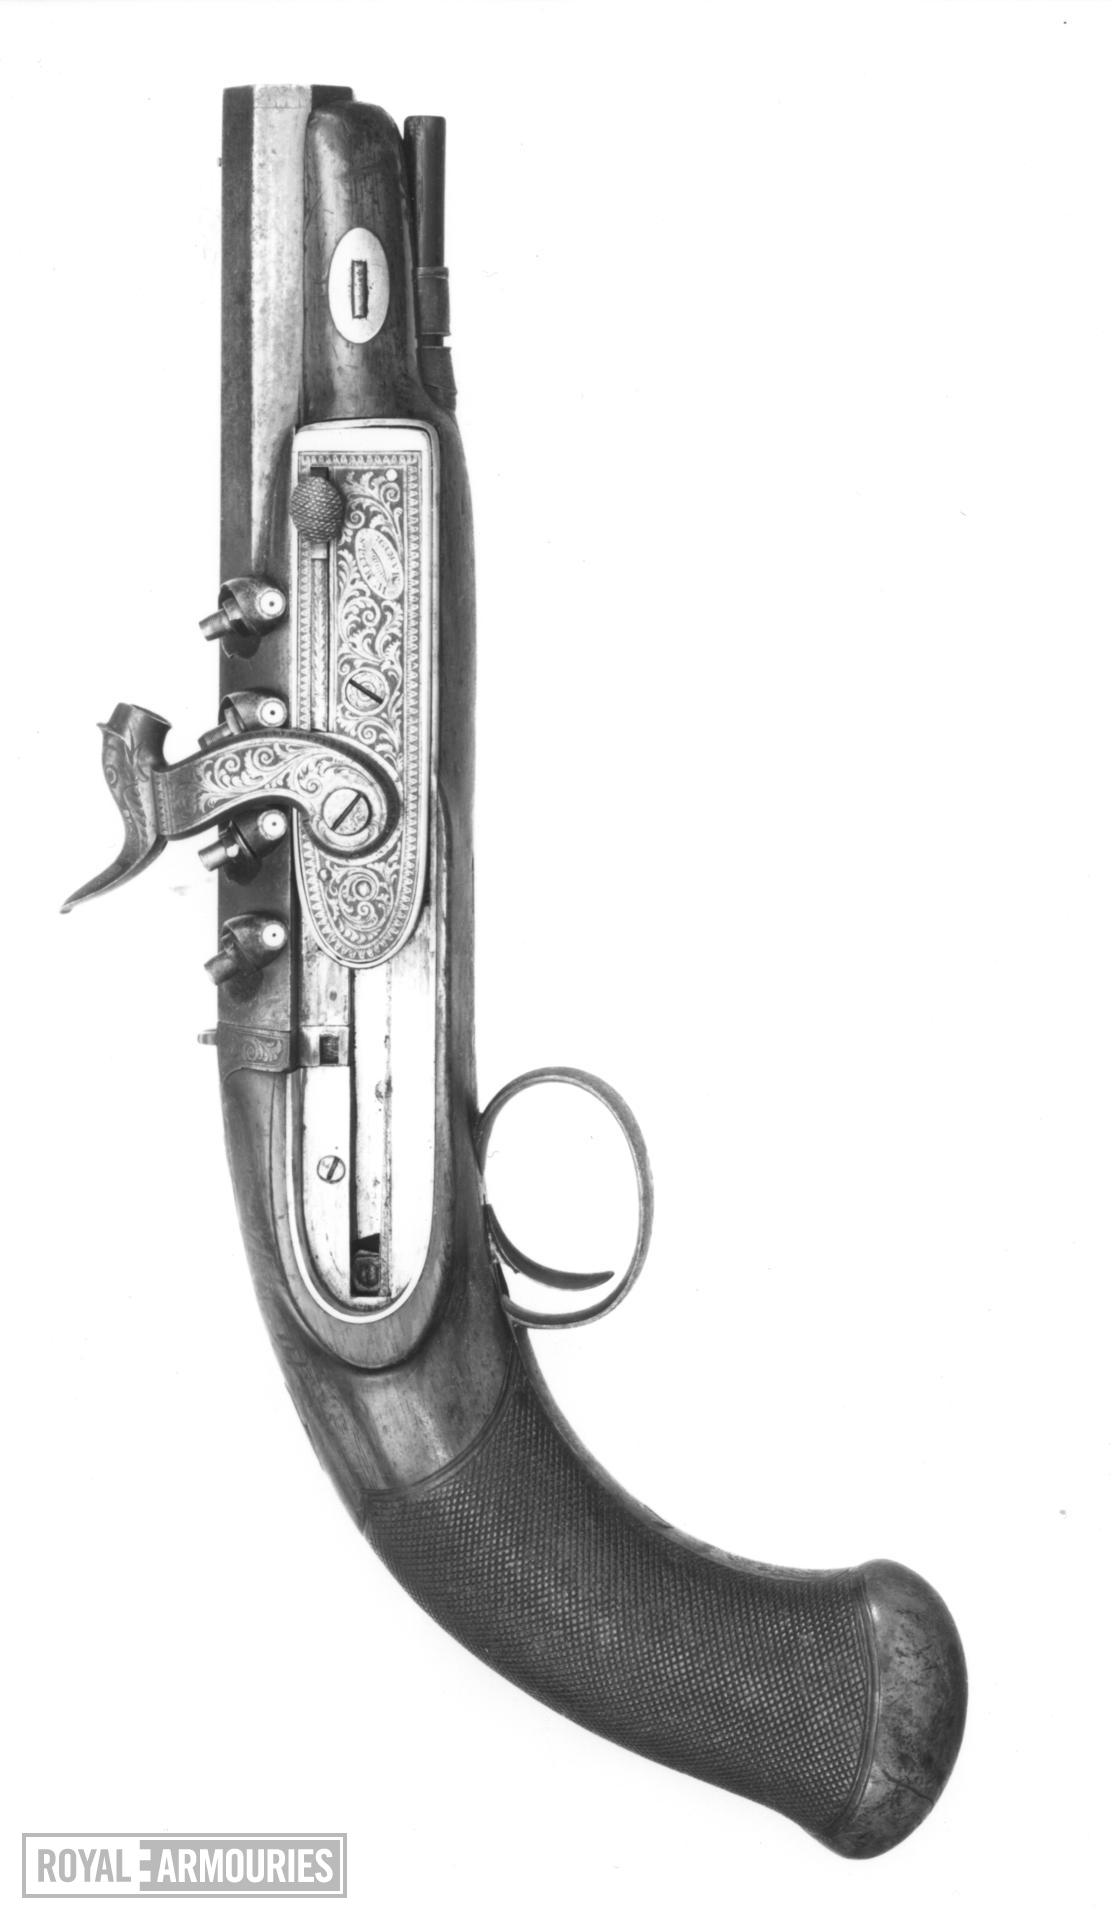 Percussion four shot superimpossed load pistol By W. Mills, 120 High Holborn